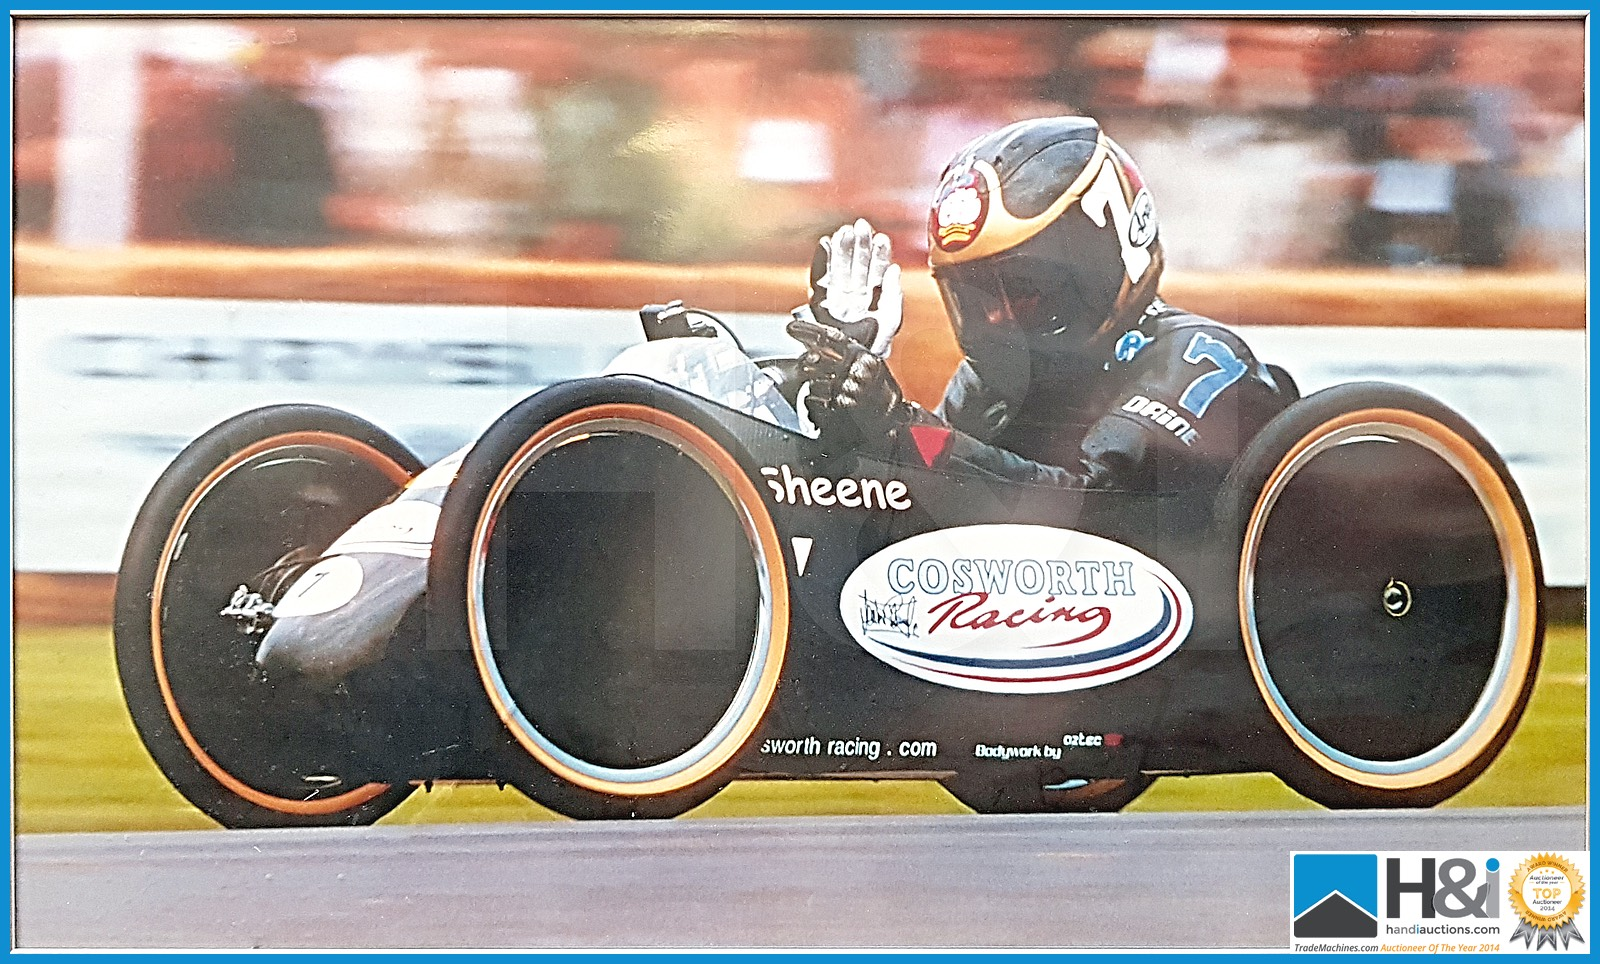 Lot 3 - Barry Sheene carbon fibre racer. The down hill racer was designed and built by a team from Cosworth